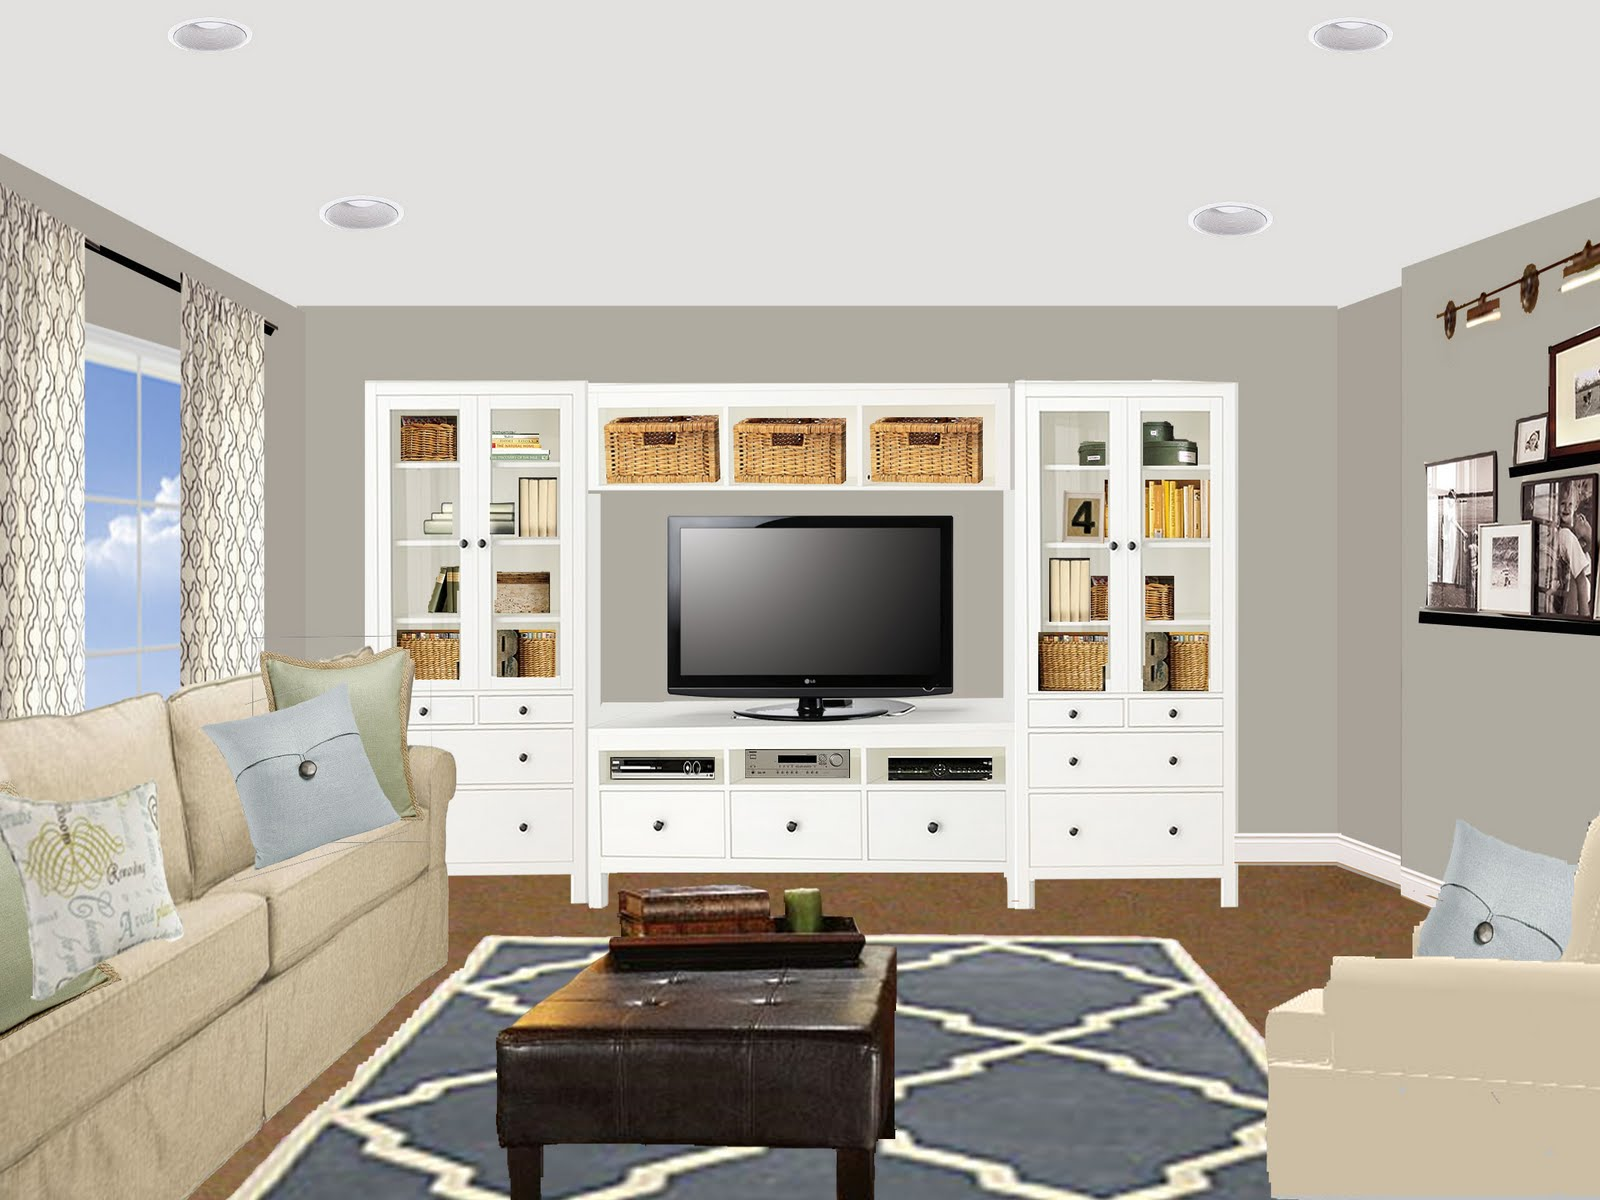 virtual redesign: carrie jo's family room - meadow lake road